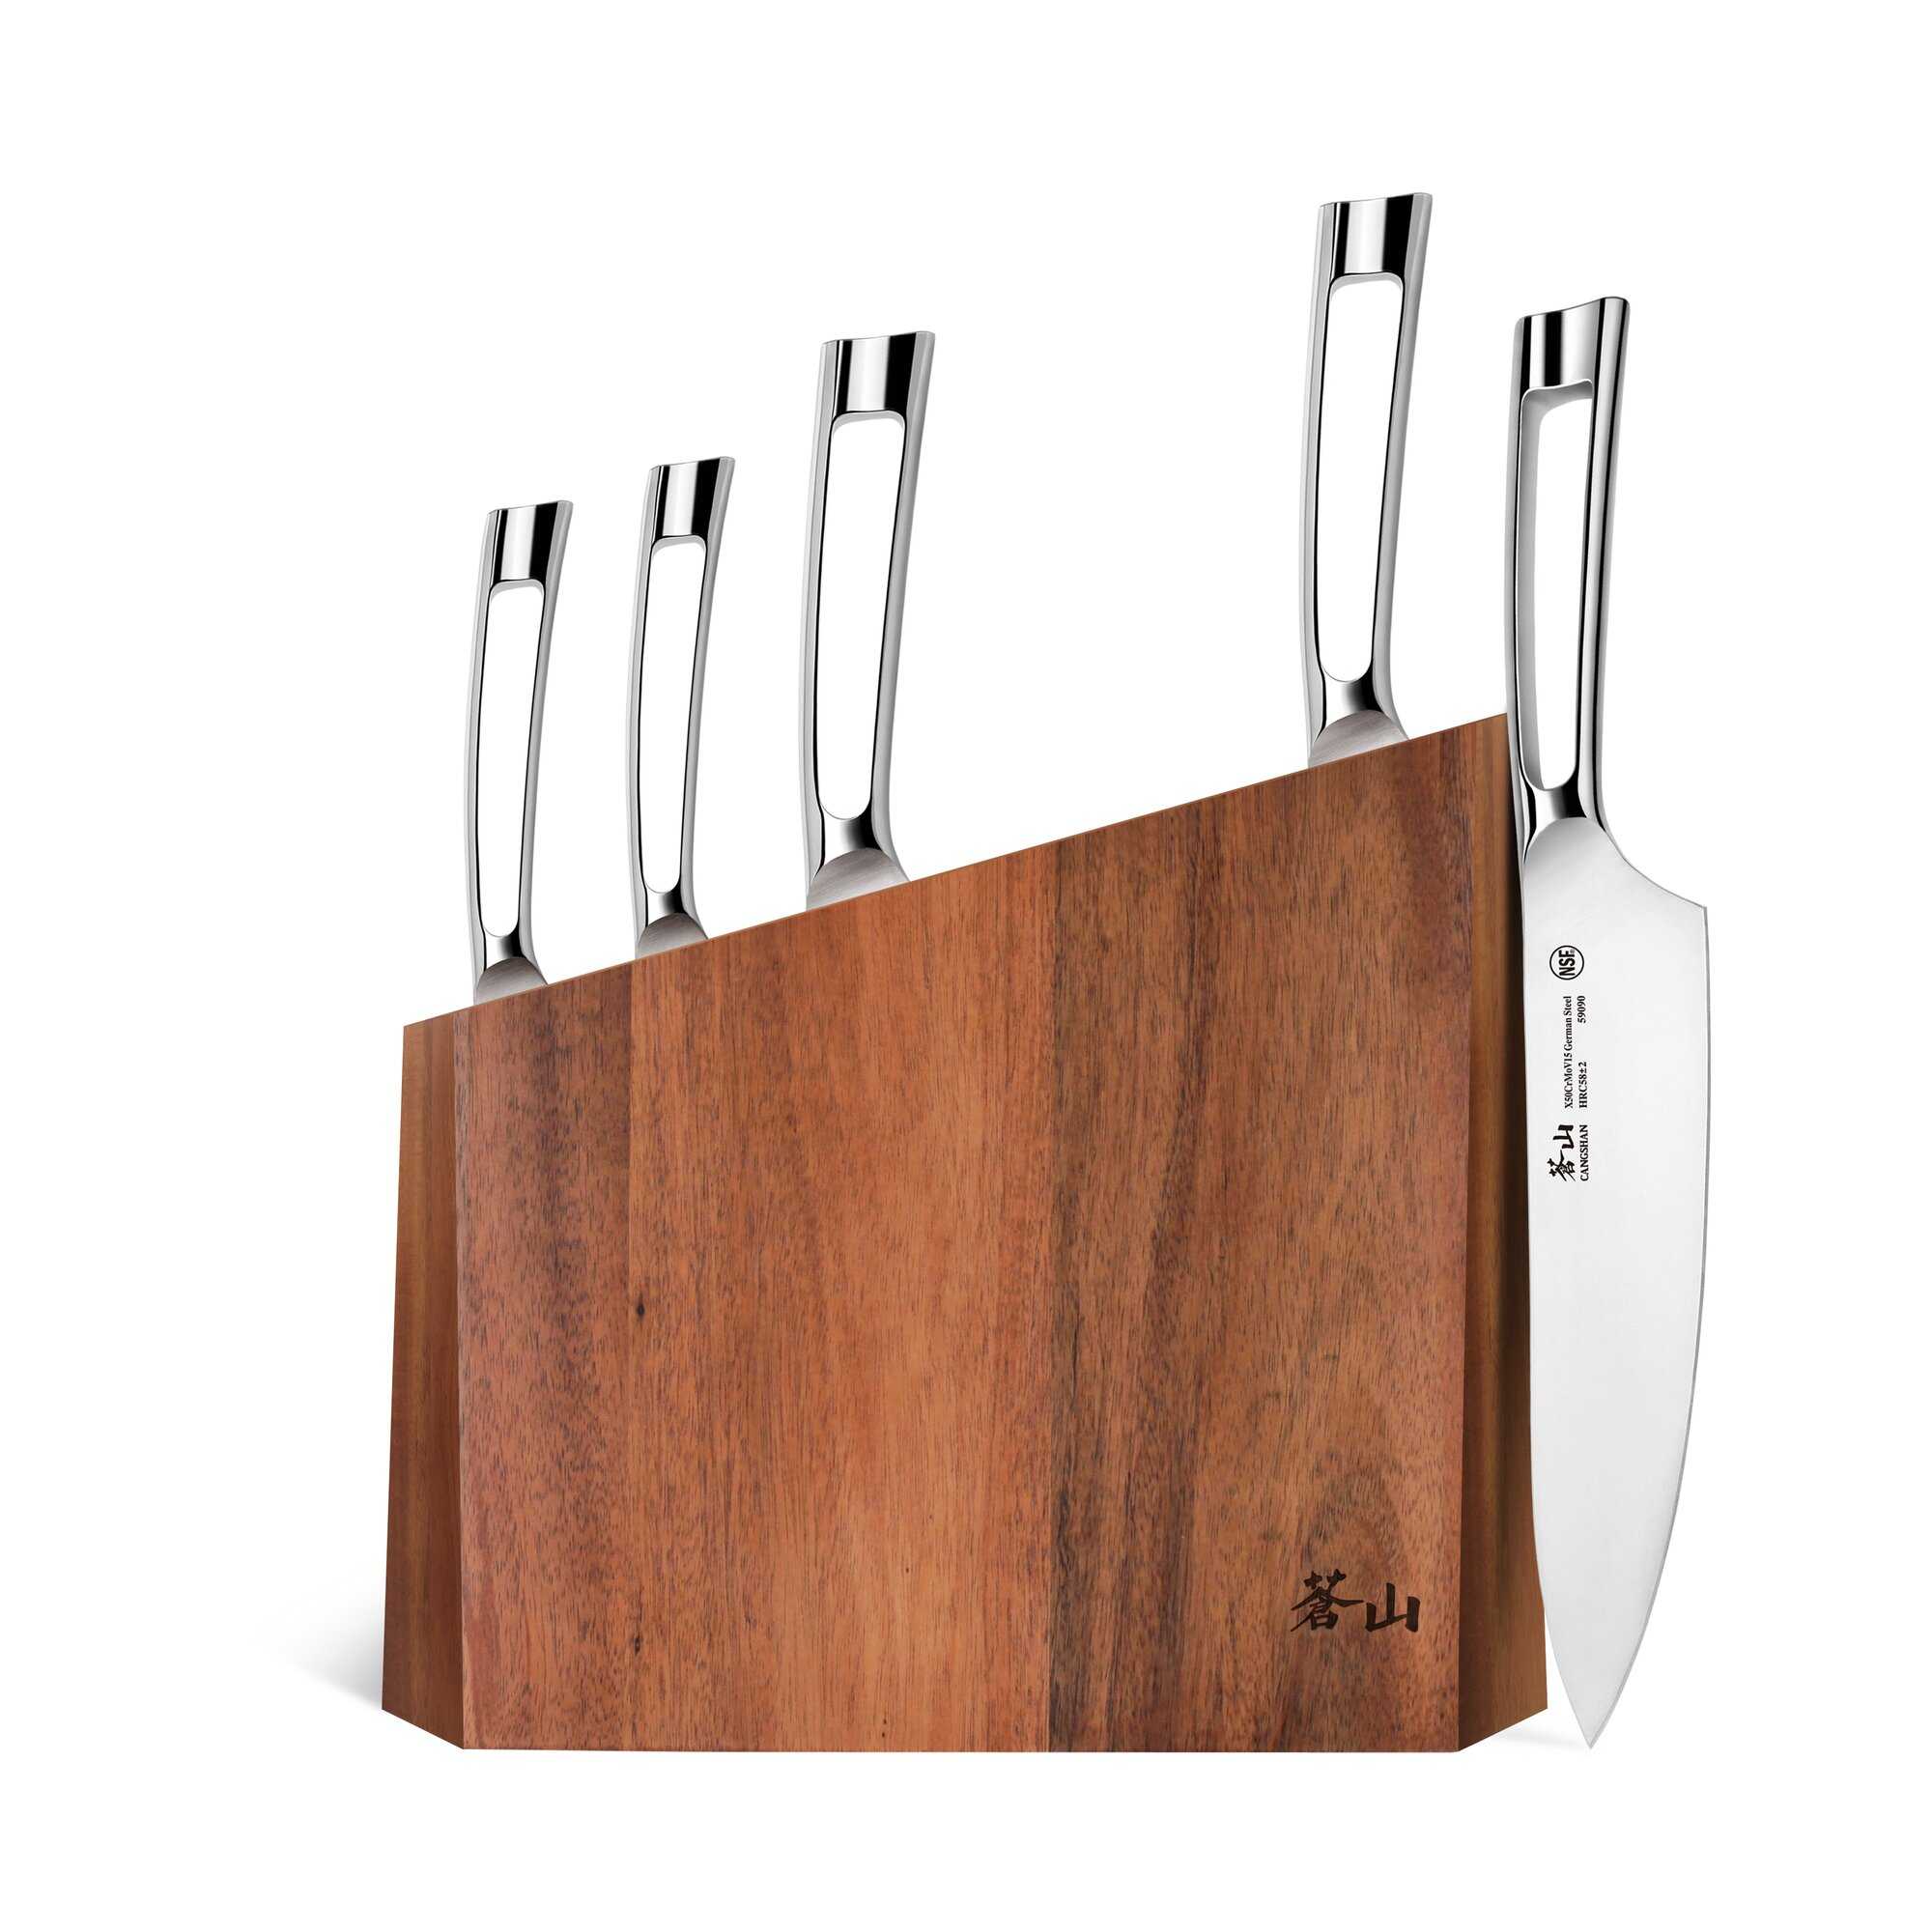 Global 6 Piece Knife Block Set Bed Bath Beyond